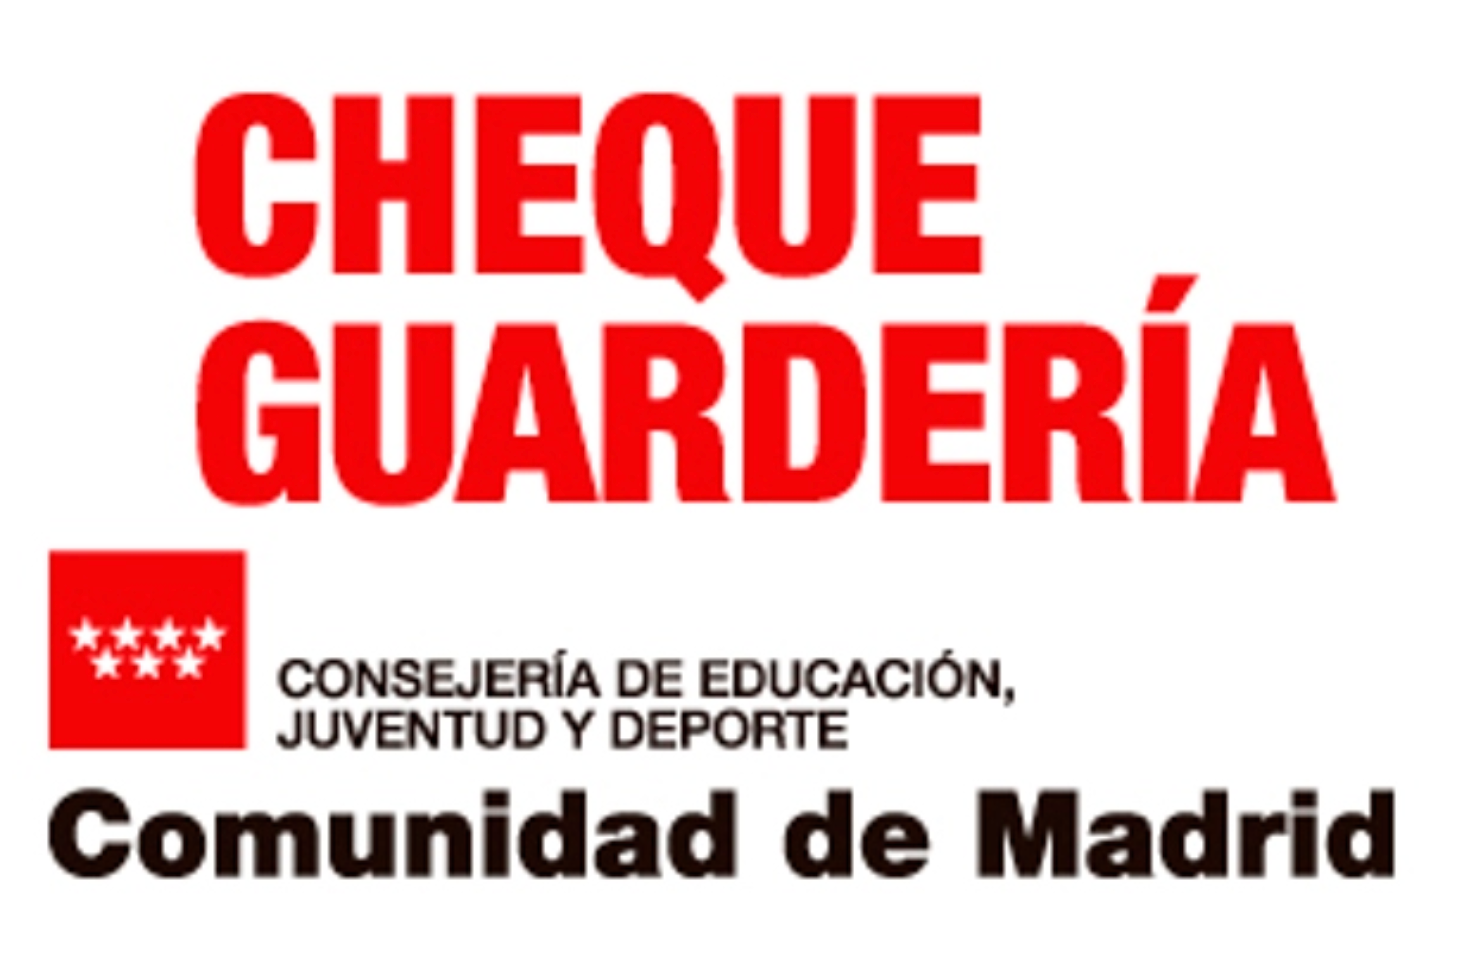 CHEQUE GUARDERÍA 2020/2021